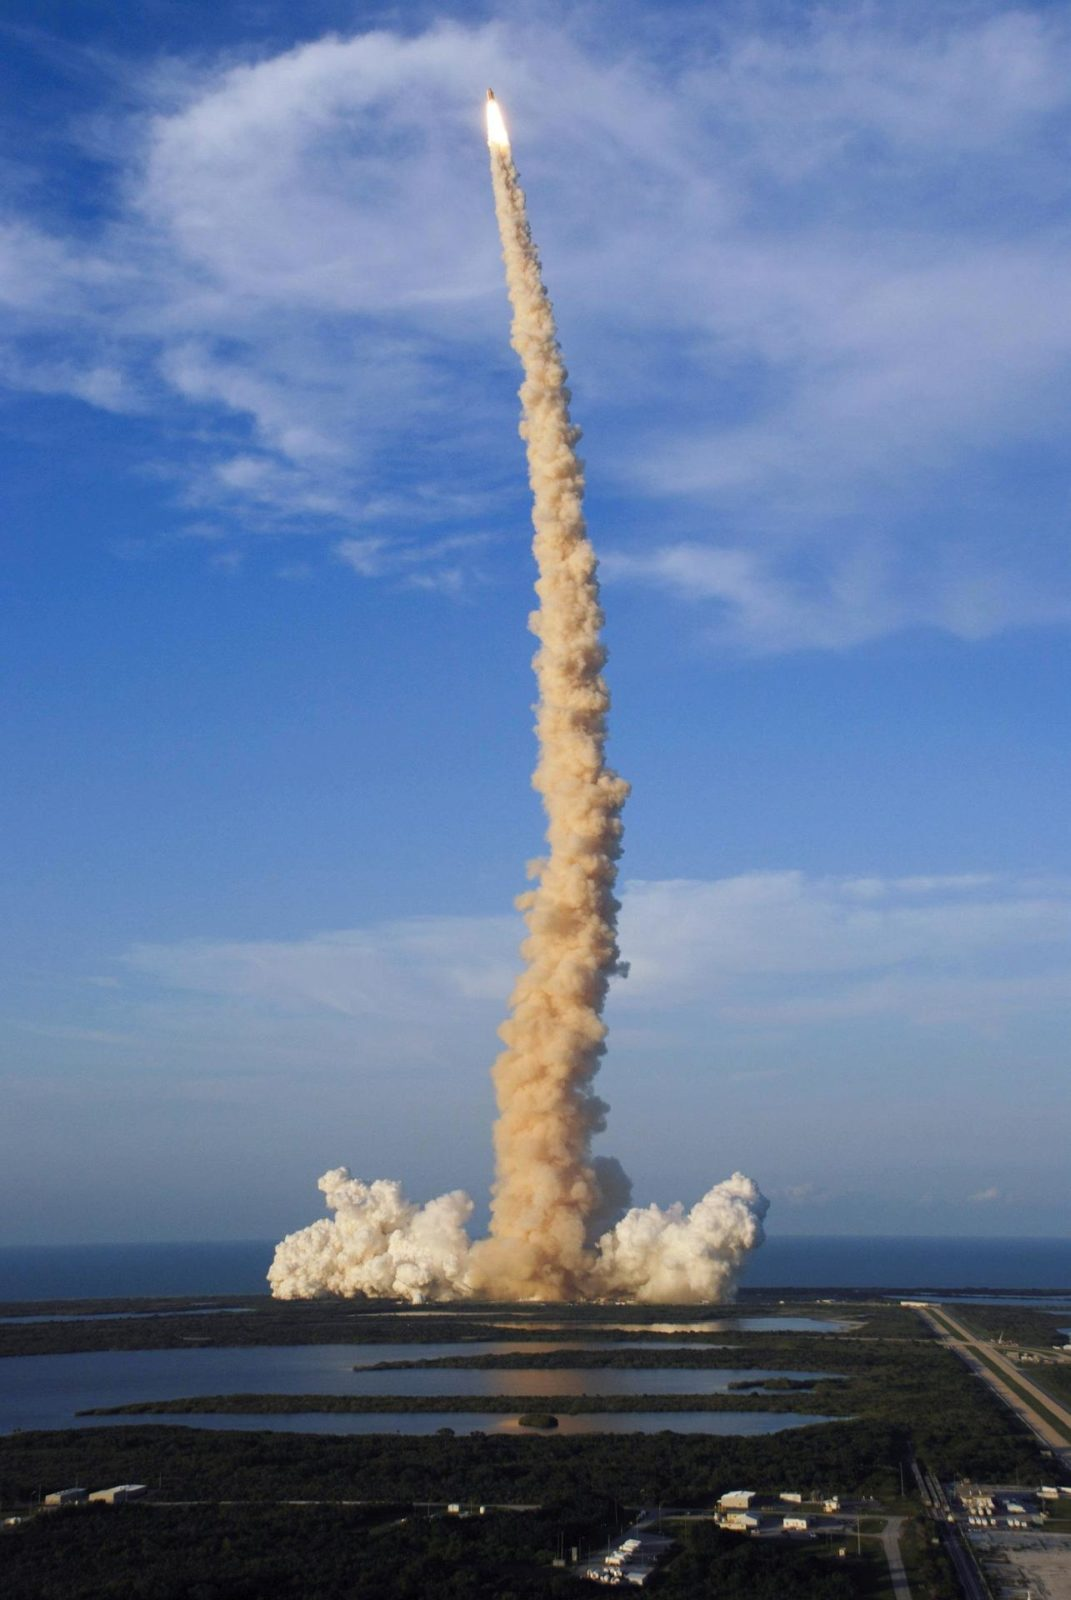 """STS117-S-017 (8 June 2007) --- The Space Shuttle Atlantis and its seven-member STS-117 crew head toward Earth-orbit and a scheduled link-up with the International Space Station. Liftoff from Kennedy Space Center's launch pad 39A occurred at 7:38 p.m. (EDT) on June 8, 2007. Onboard are astronauts Rick Sturckow, commander; Lee Archambault, pilot; Jim Reilly, Patrick Forrester, John """"Danny"""" Olivas, Steven Swanson and Clayton Anderson, all mission specialists. Anderson will join Expedition 15 in progress to serve as a flight engineer aboard the station. Atlantis will dock with the orbital outpost on Sunday, June 10, to begin a joint mission that will increase the complex's power generation capability. Using the shuttle and station robotic arms and conducting three scheduled spacewalks, the astronauts will install another set of giant solar array wings on the station and retract another array, preparing it for a future move. STS117-S-017"""